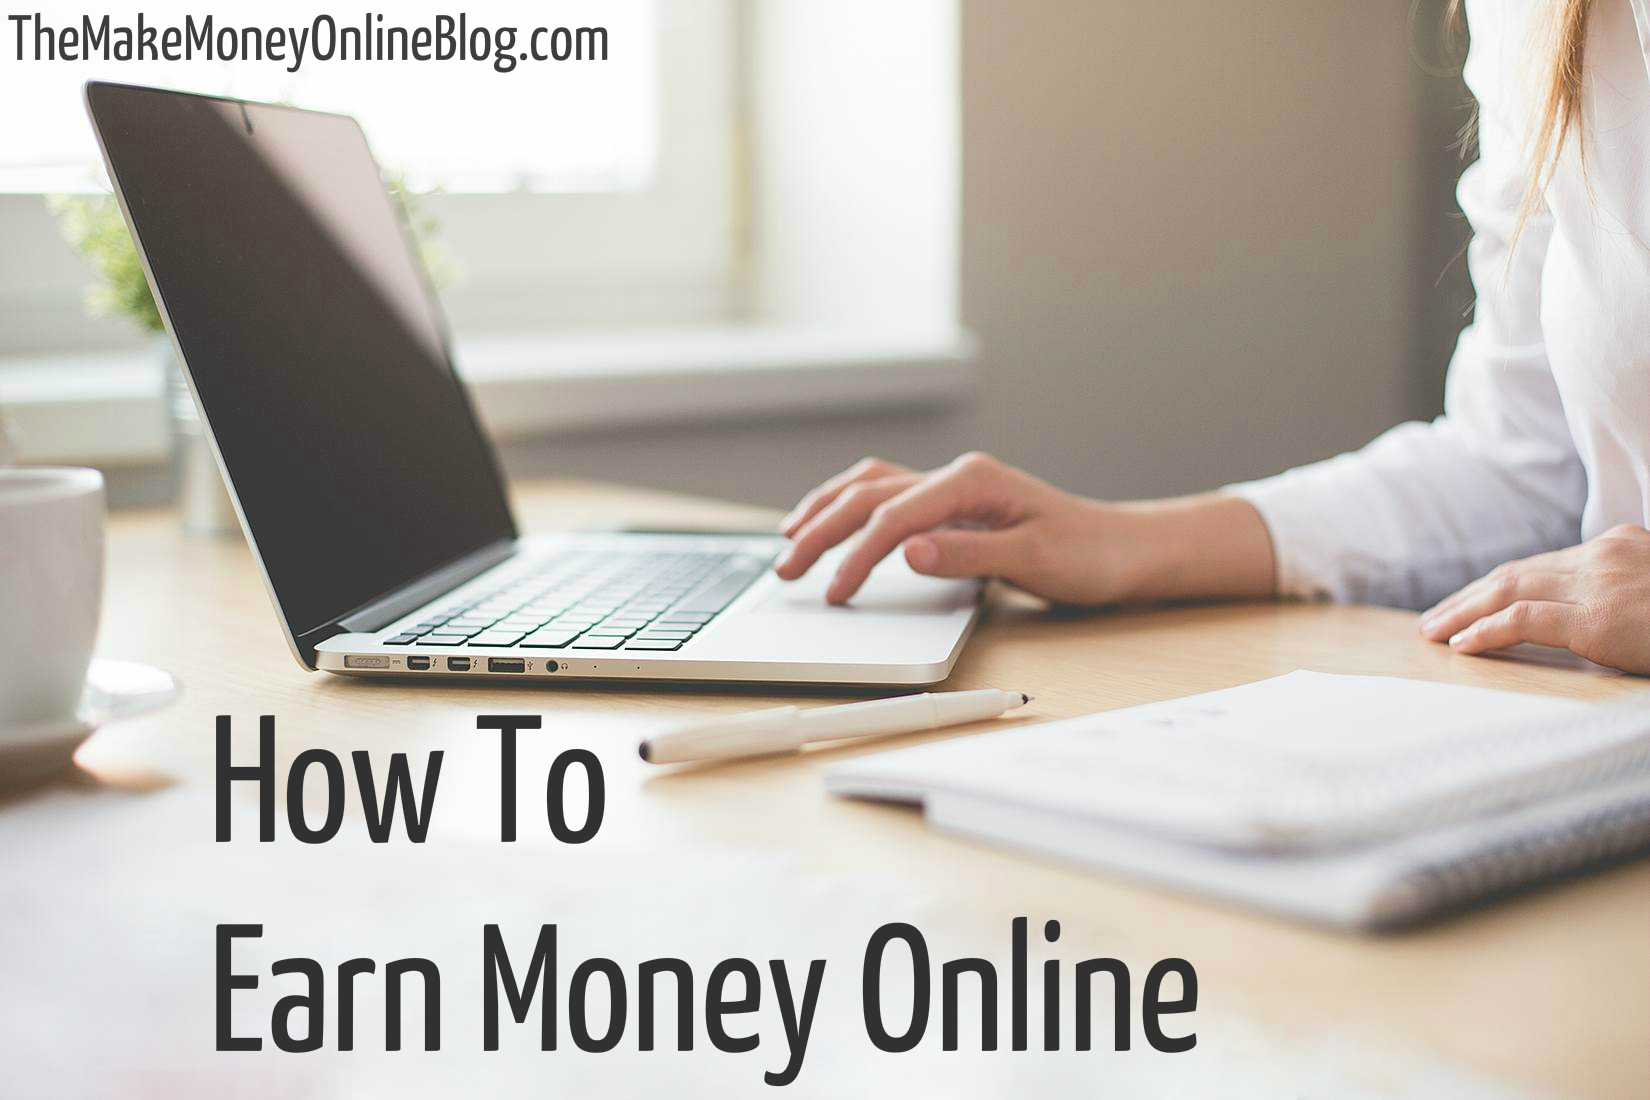 articles online and earn money 20 sites that pay you to write articles online: get paid to blog about anything last updated january 30, 2017 (this post may contain affiliate links) yes, you can make money writing even if you're not a professional writer.